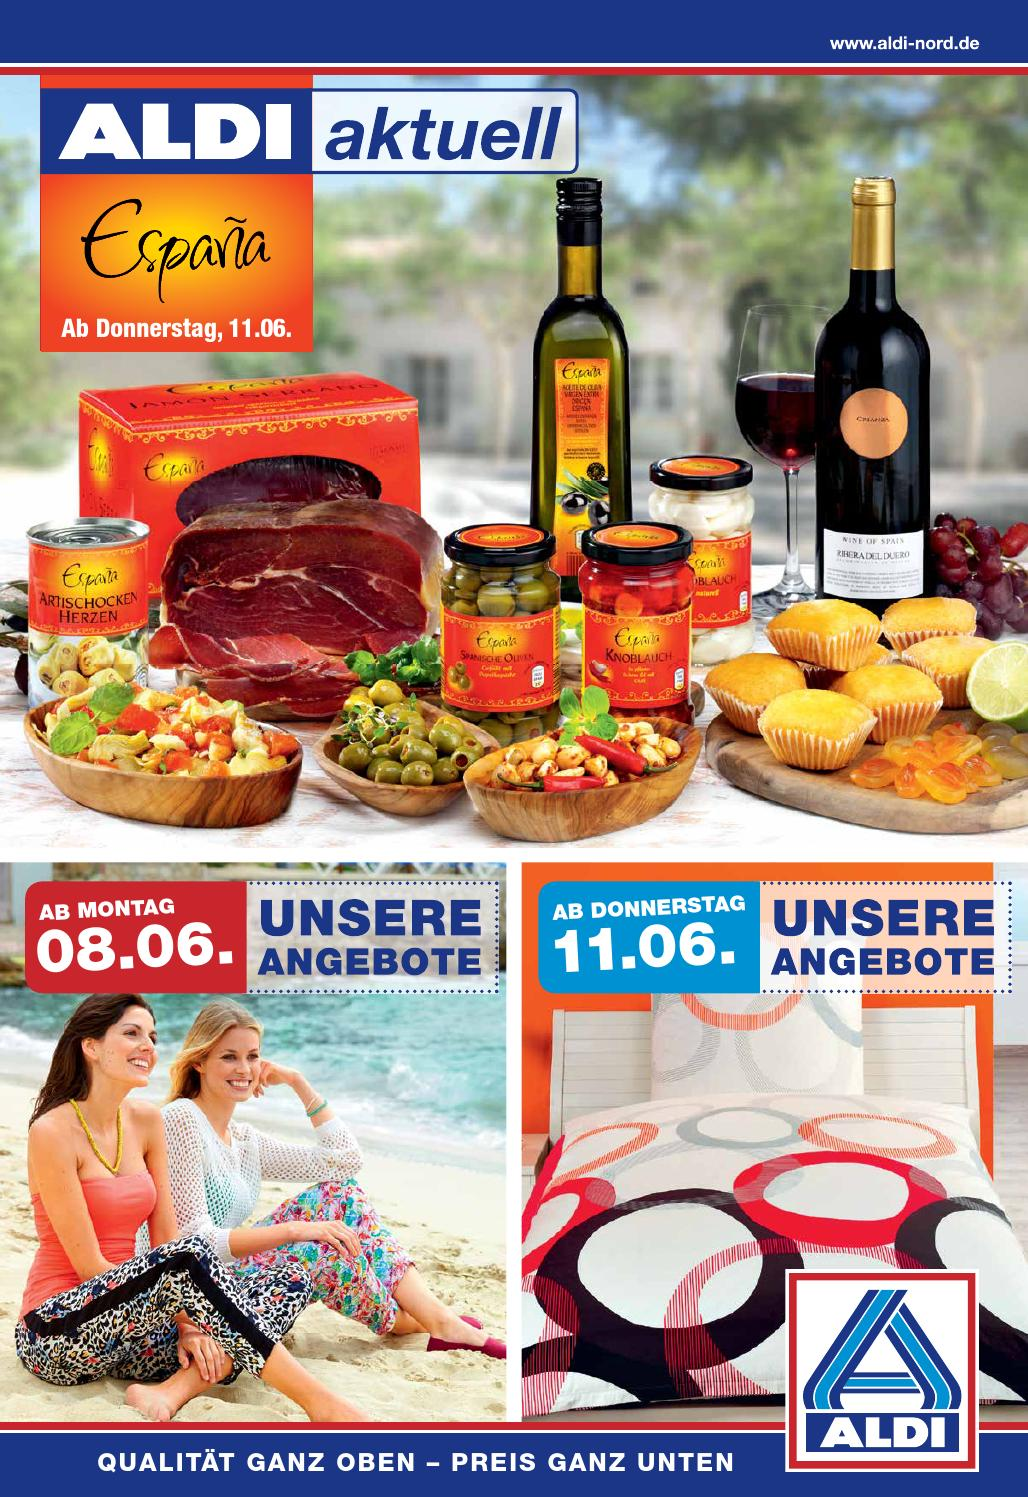 Aldi nord angebote 8 13juni2015 by issuu for Gartenpool aldi nord 2015